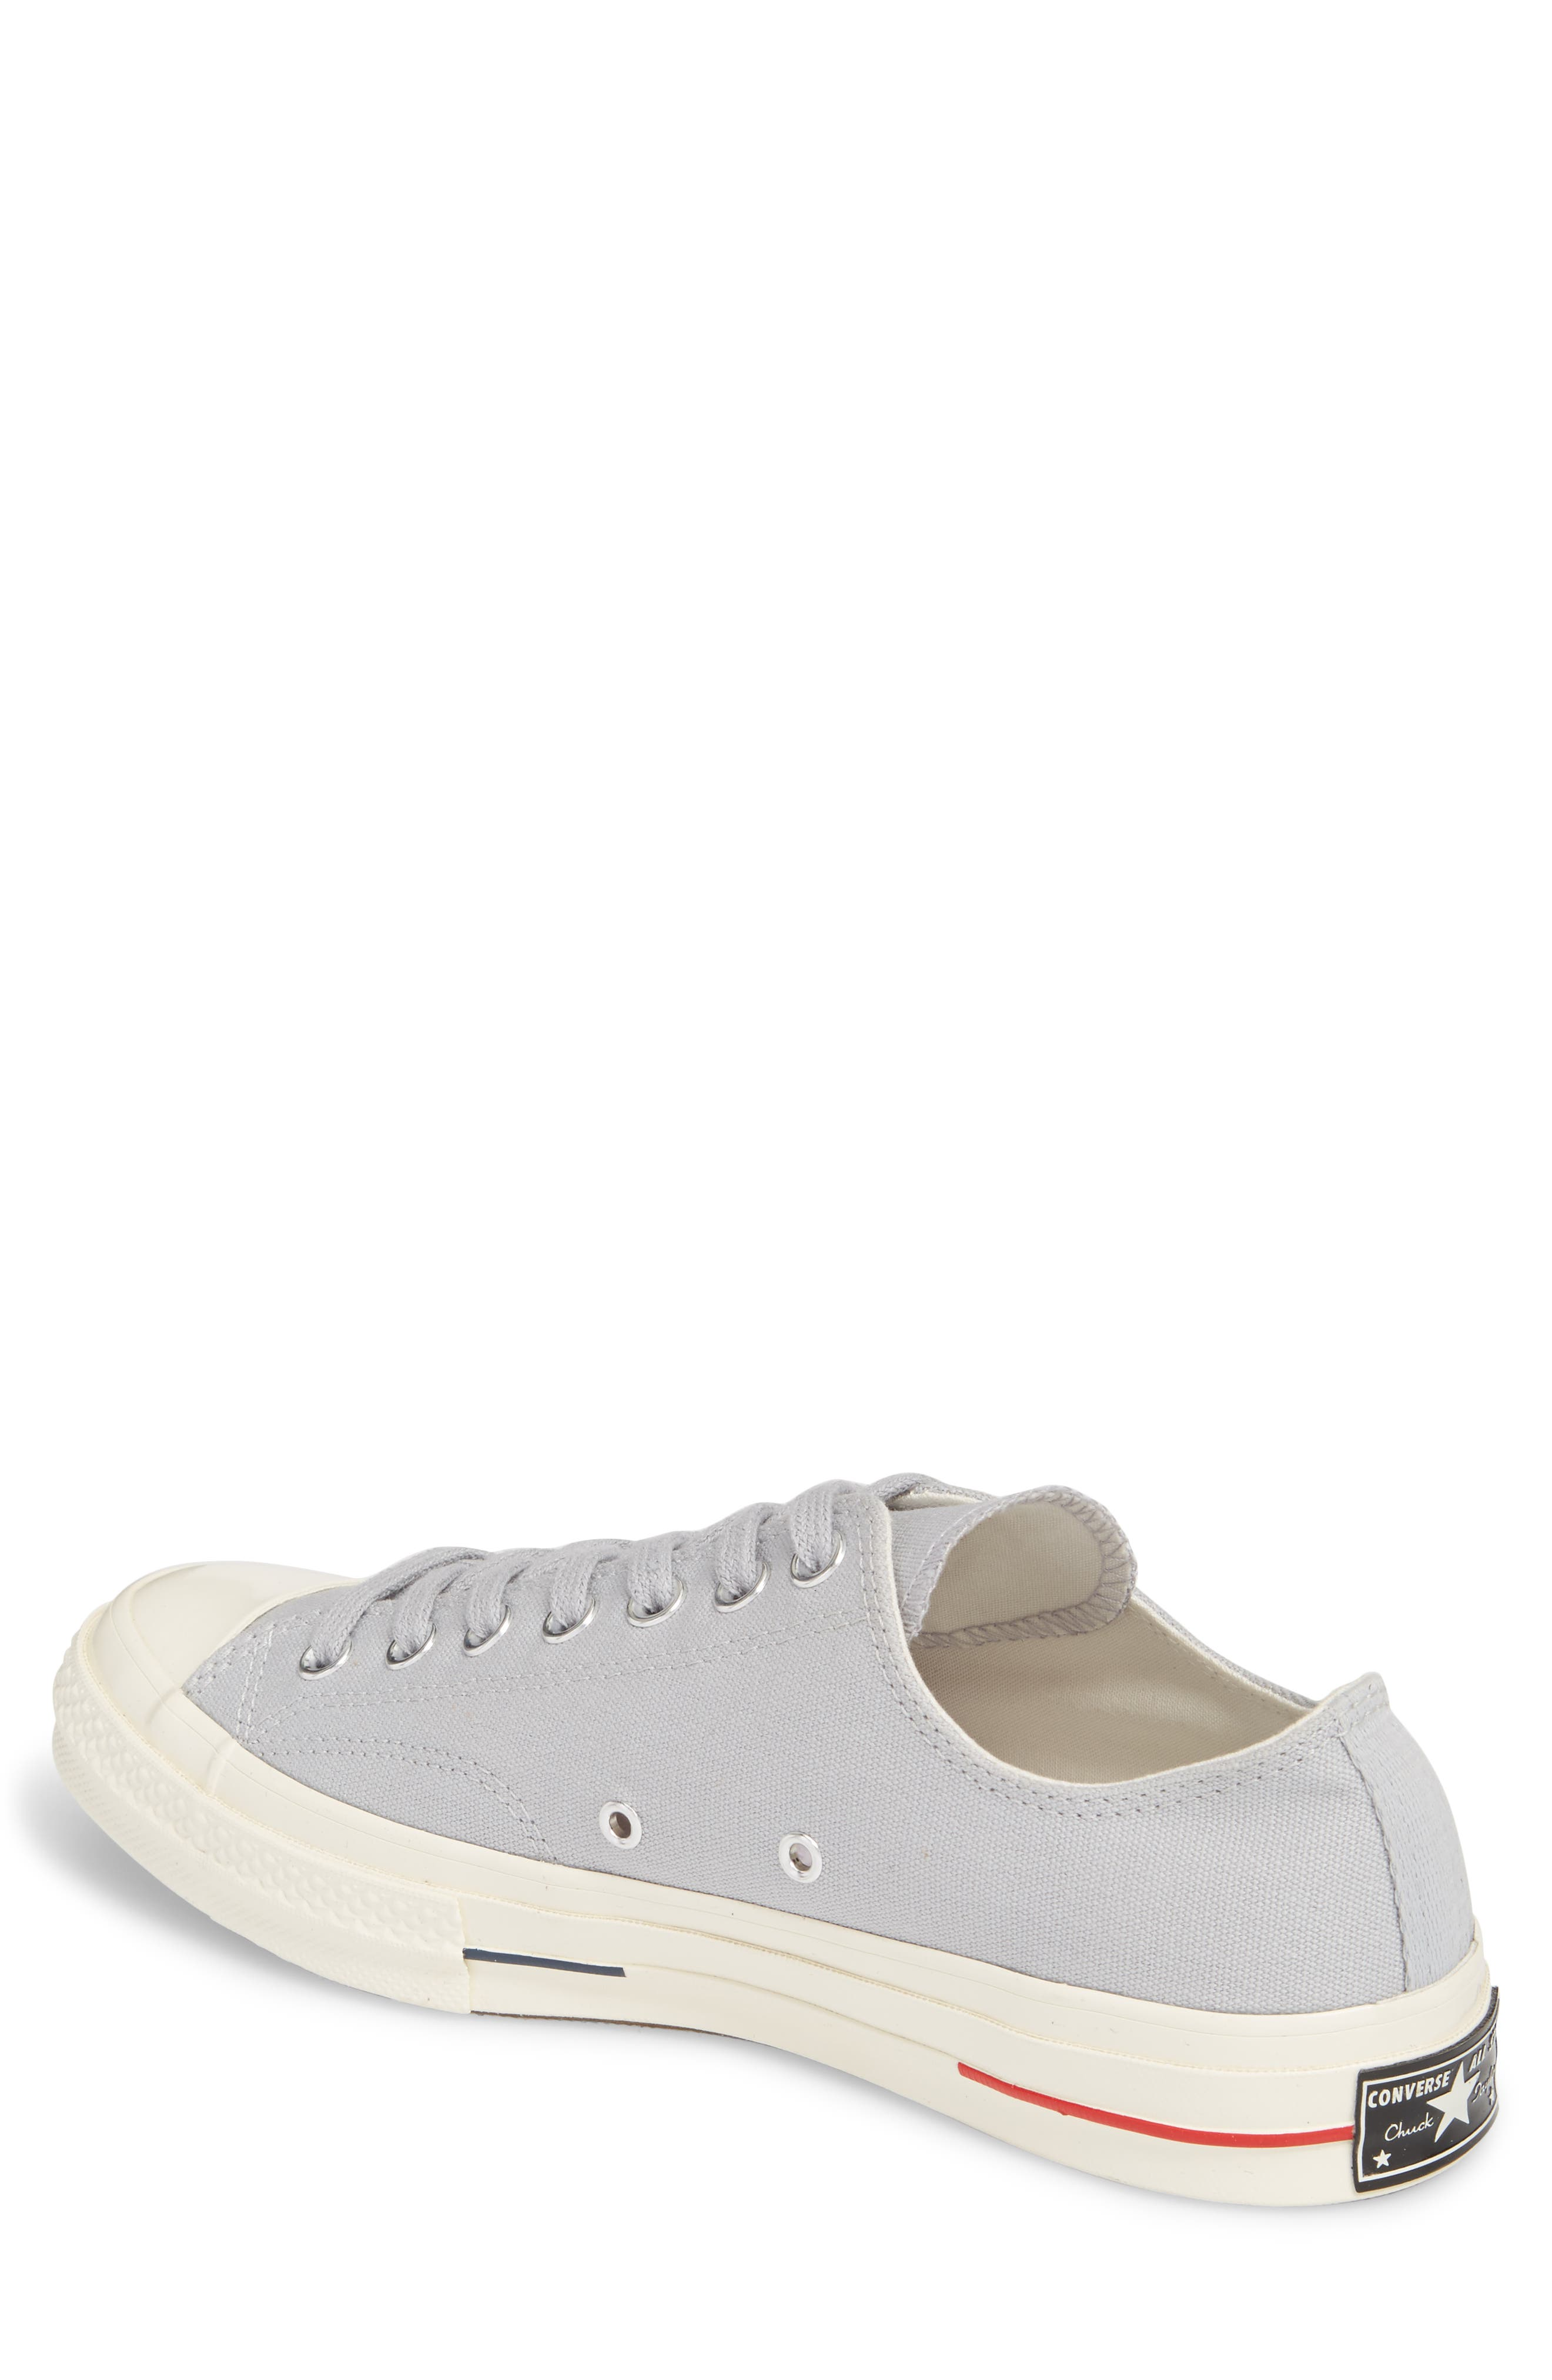 CONVERSE,                             Chuck Taylor<sup>®</sup> All Star<sup>®</sup> 70 Heritage Low Top Sneaker,                             Alternate thumbnail 2, color,                             097